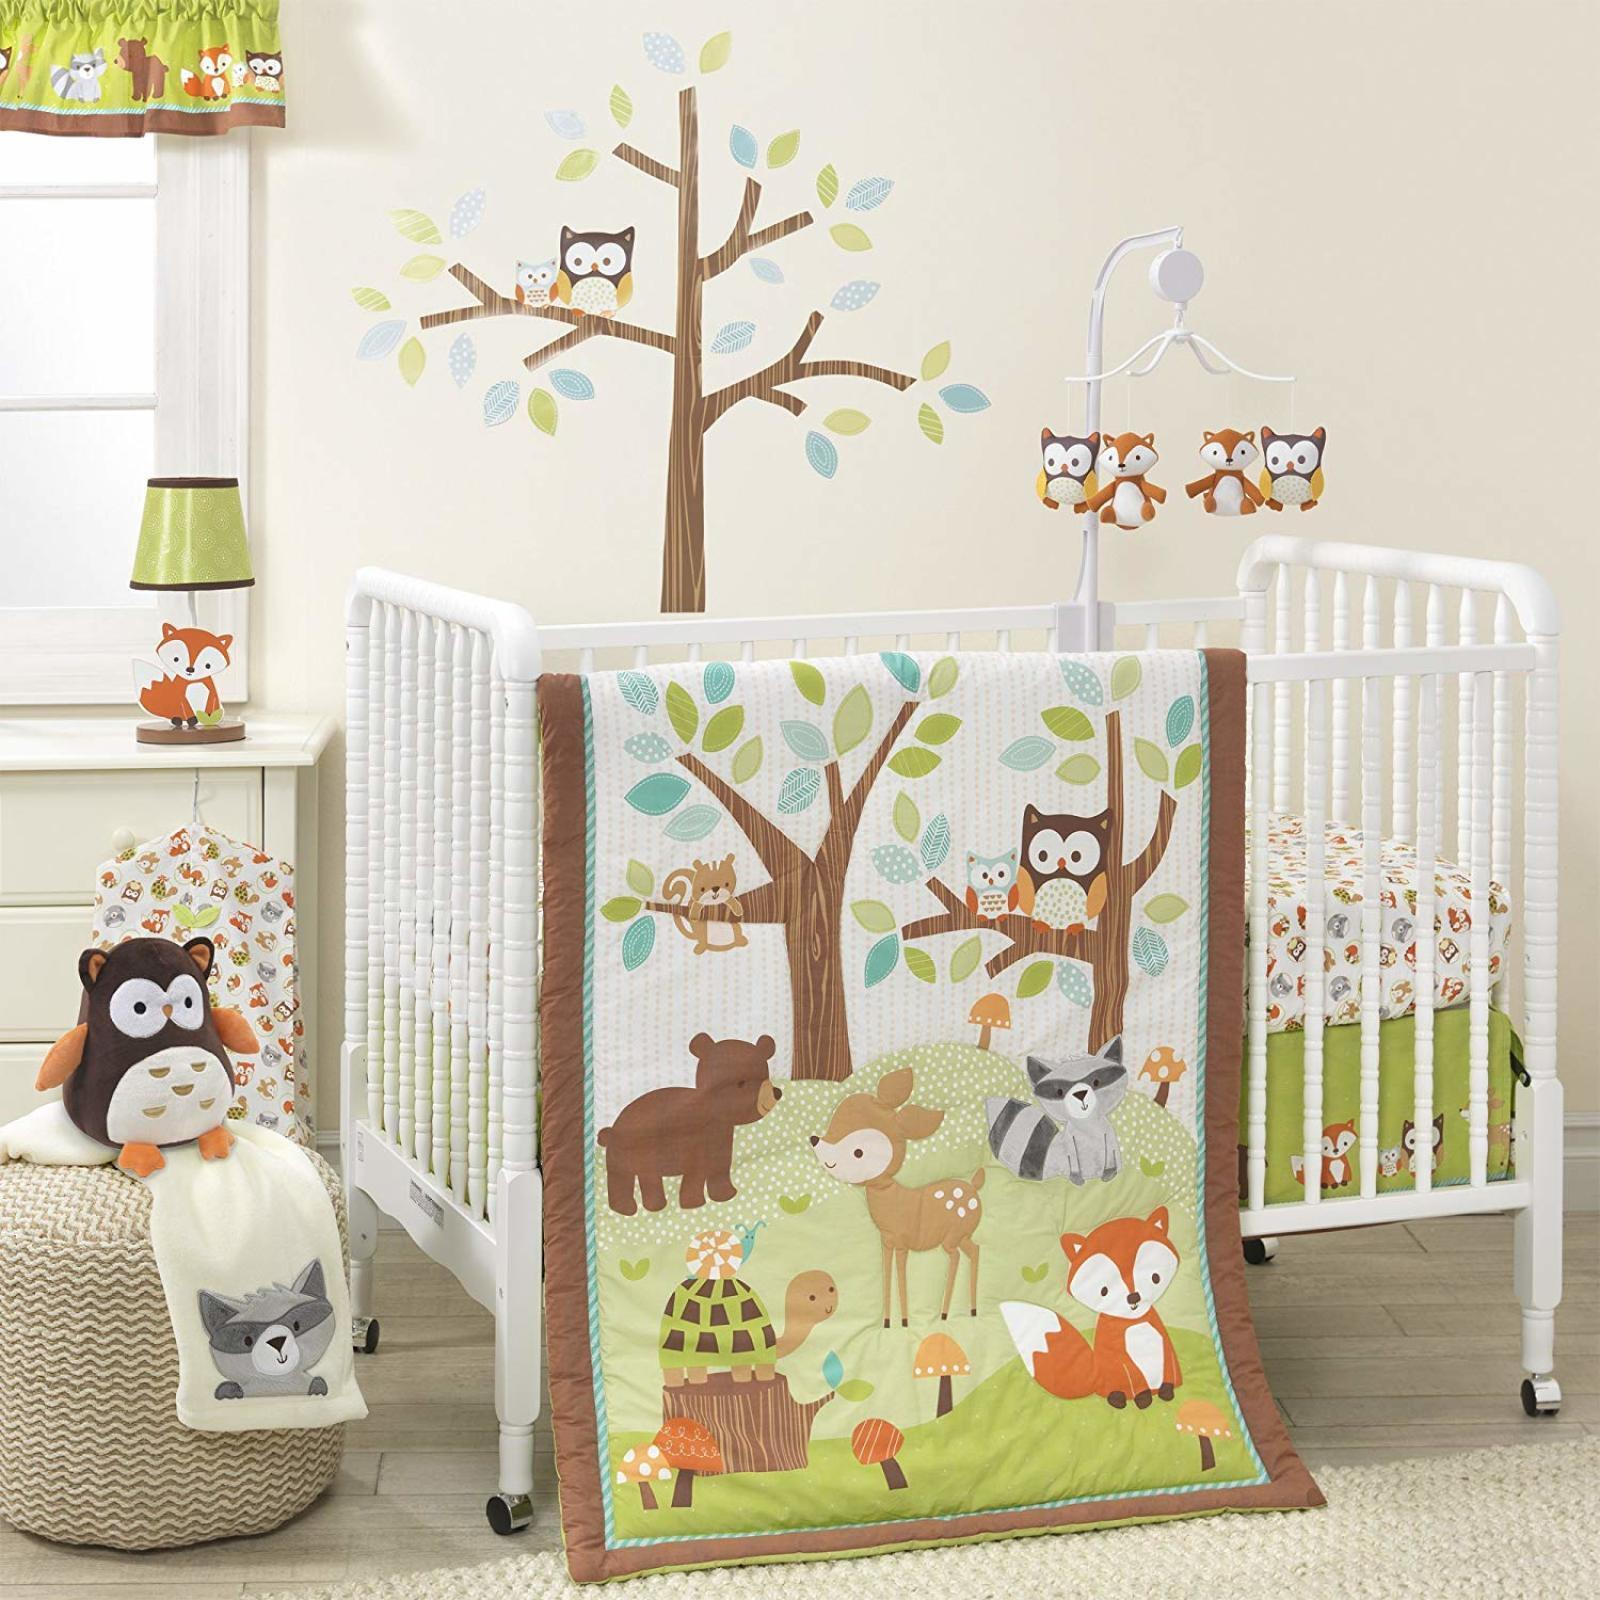 Details About Forest 3 Piece Nursery Bedding Set Animal Baby Crib Bedding  Set Boy Girl Bedroom